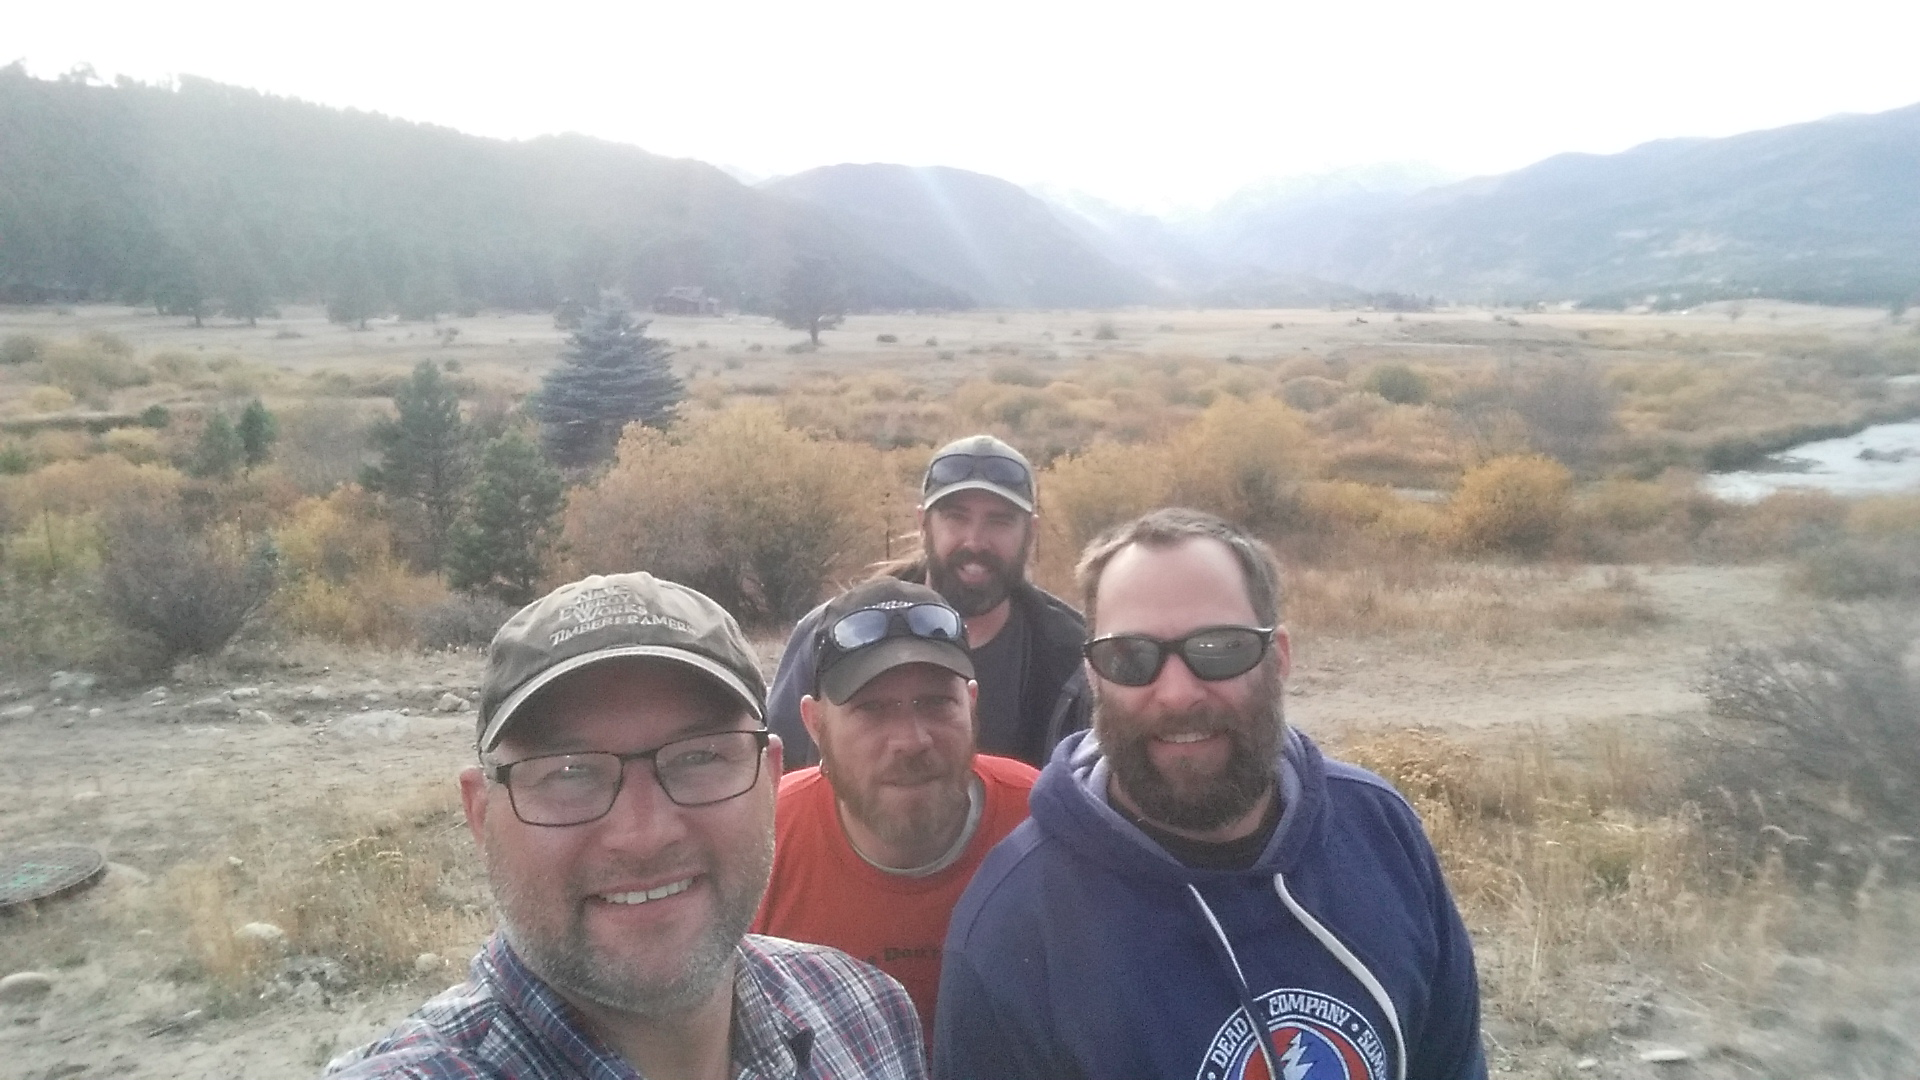 Leaving the frame to check out the region. Darren, Mike, Jimmy, and Todd.